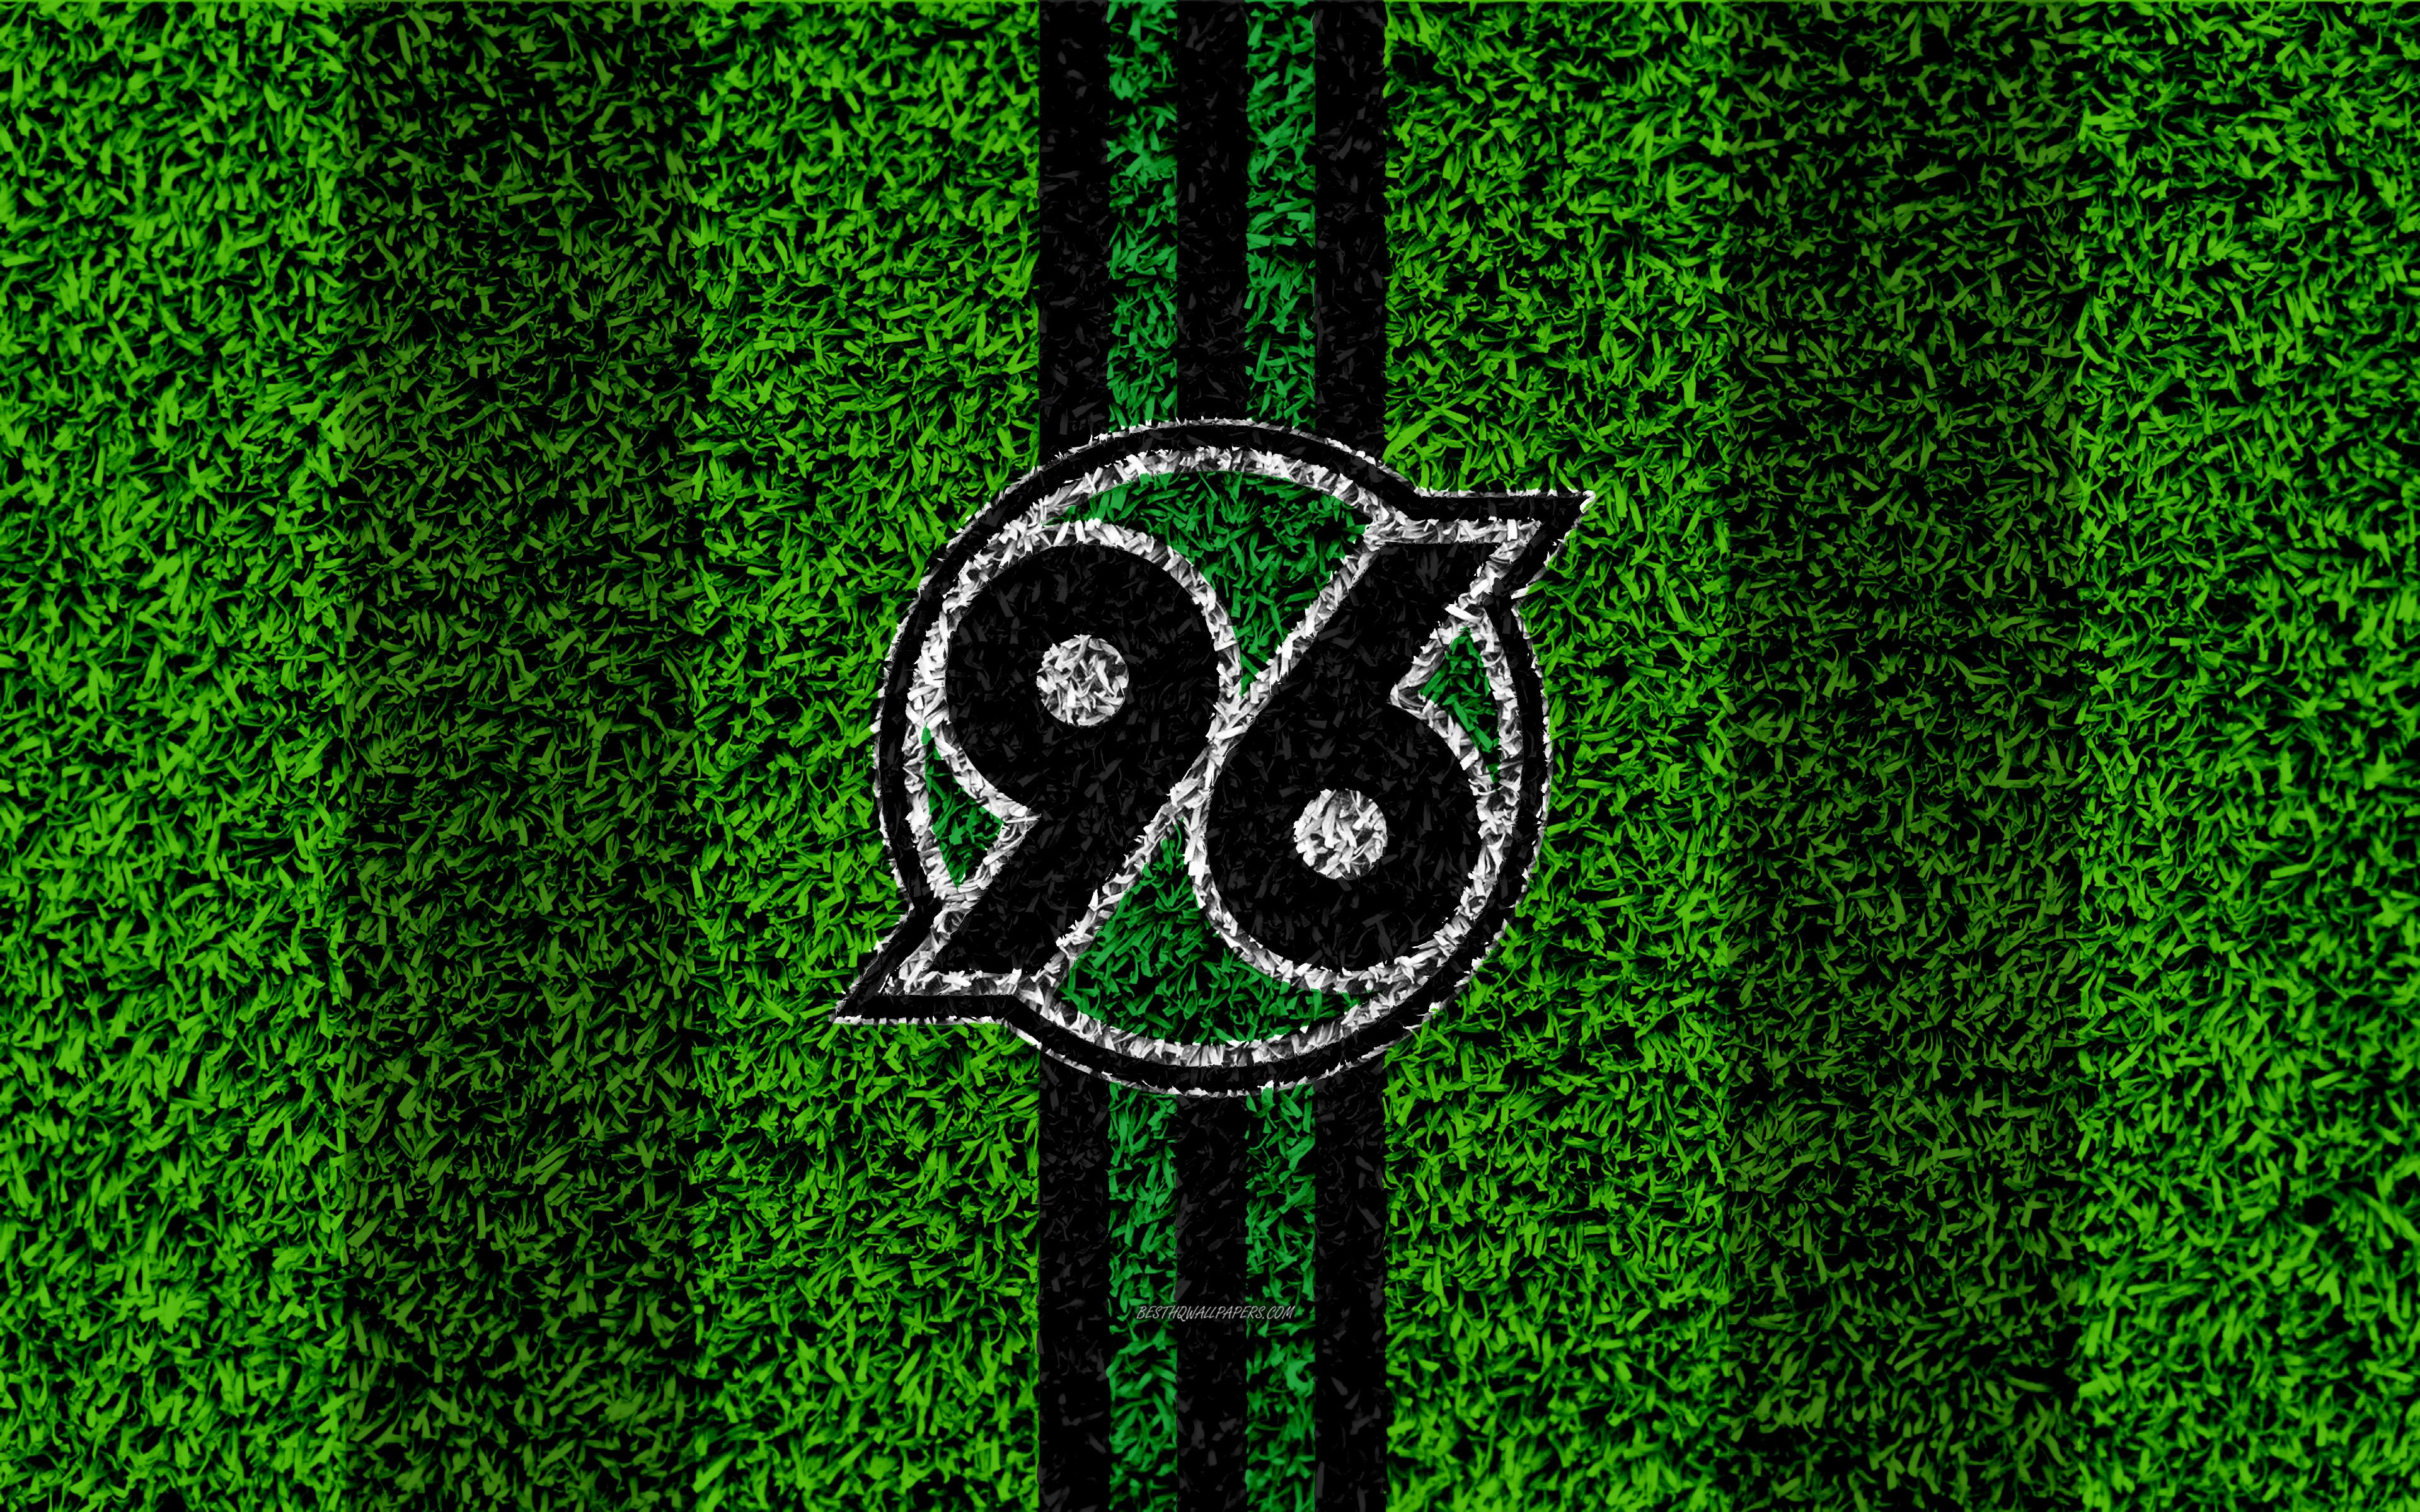 Download wallpapers Hannover 96 FC, 4k, German football club